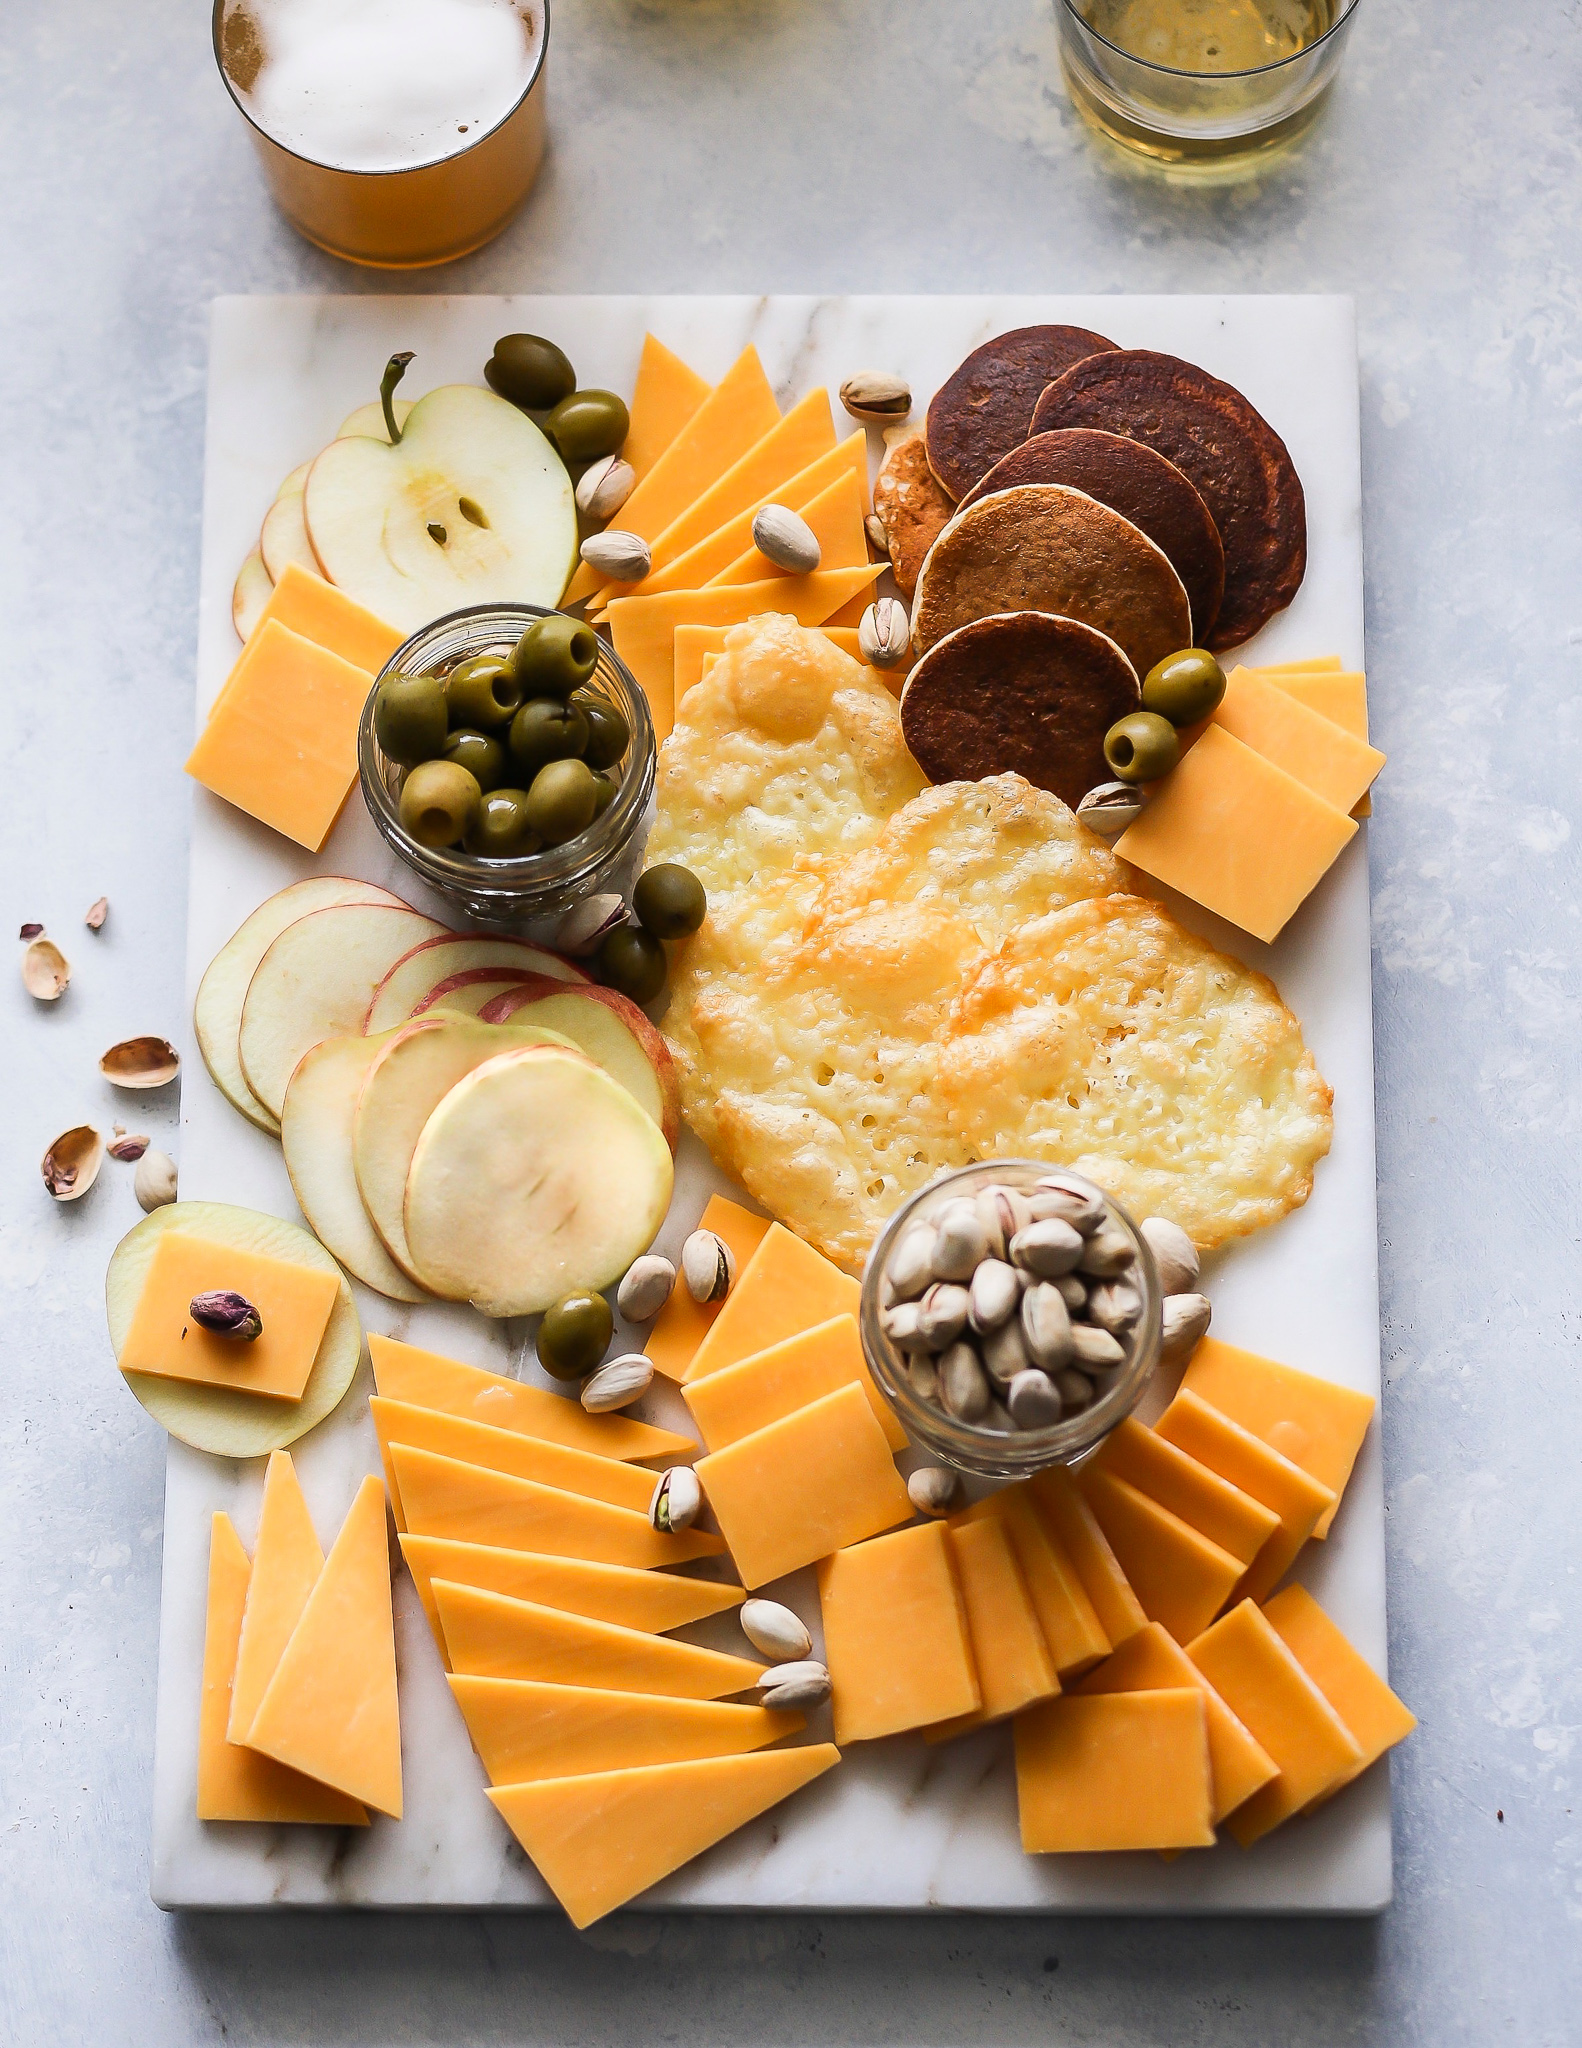 Craft Beer + Cheddar Pairing Tips | Set the Table #cheeseboard #tillamook #cheddar #nationalcheddarday #craftbeer